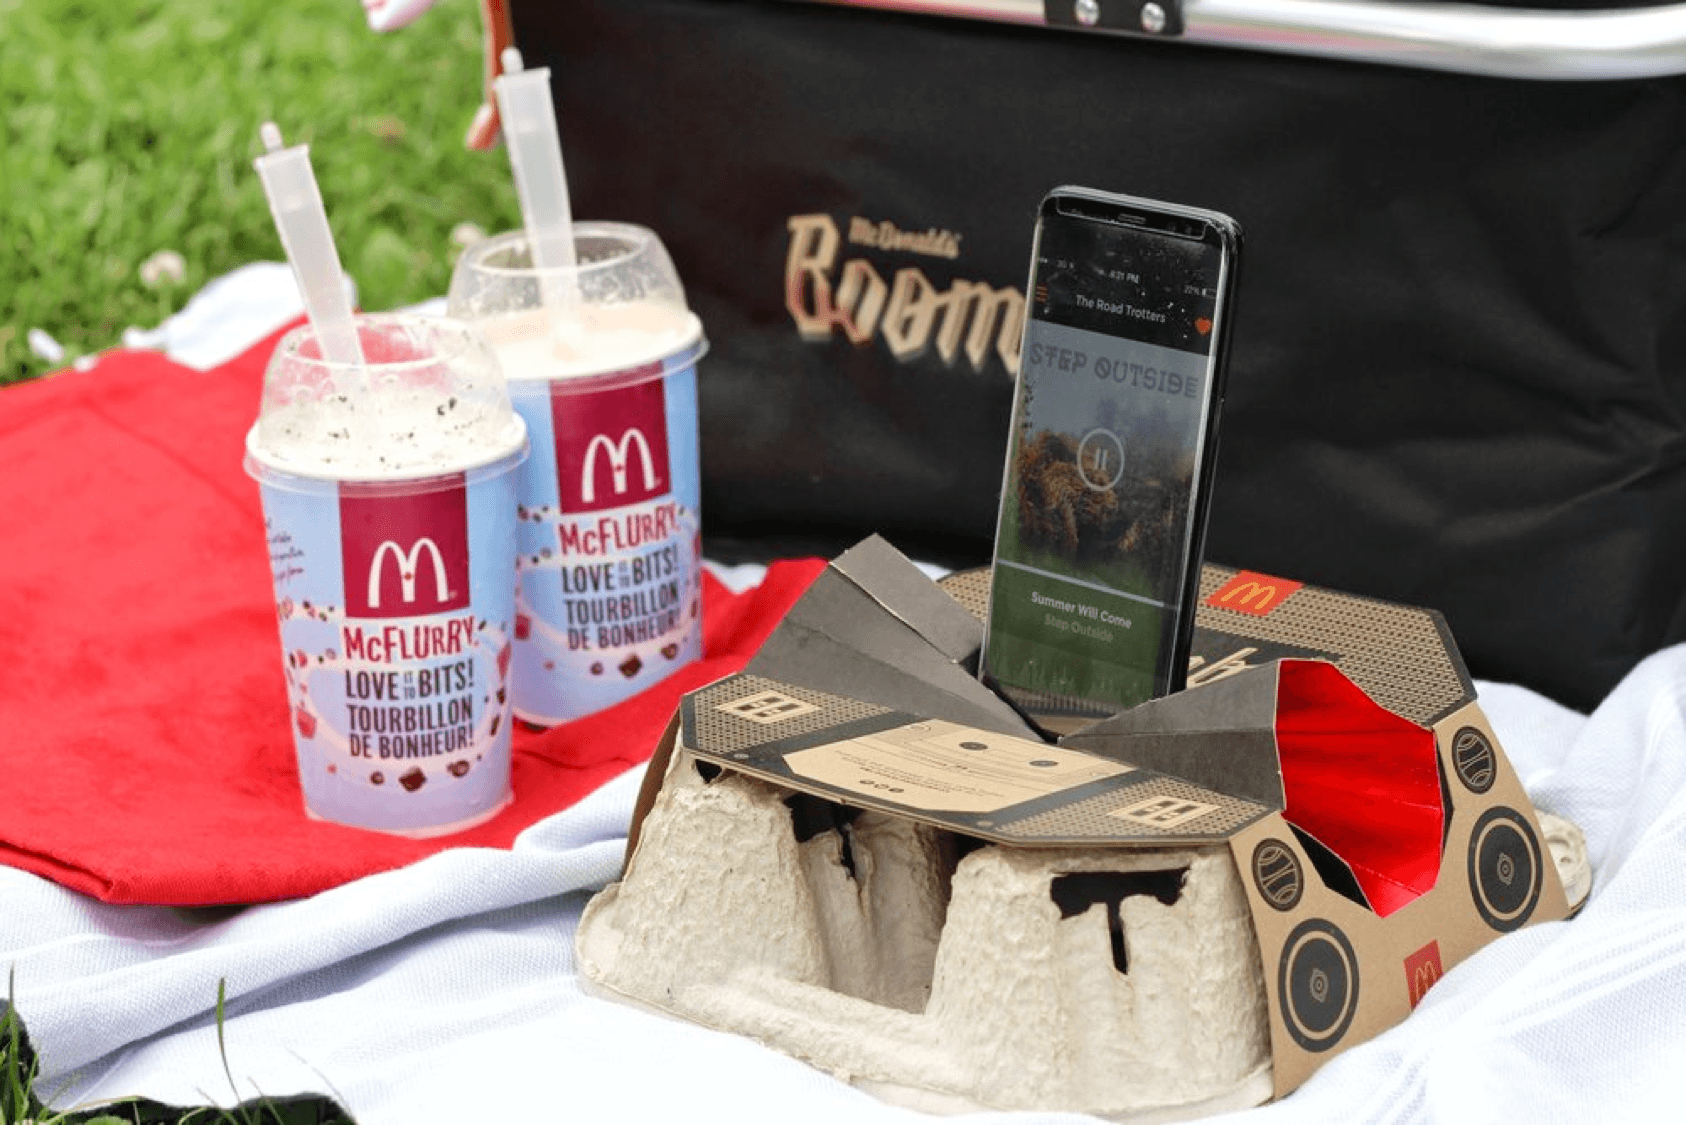 McDonald's Canada collaborated with the University of Waterloo to create a limited-edition drink tray boombox that worked with customers' smartphones.